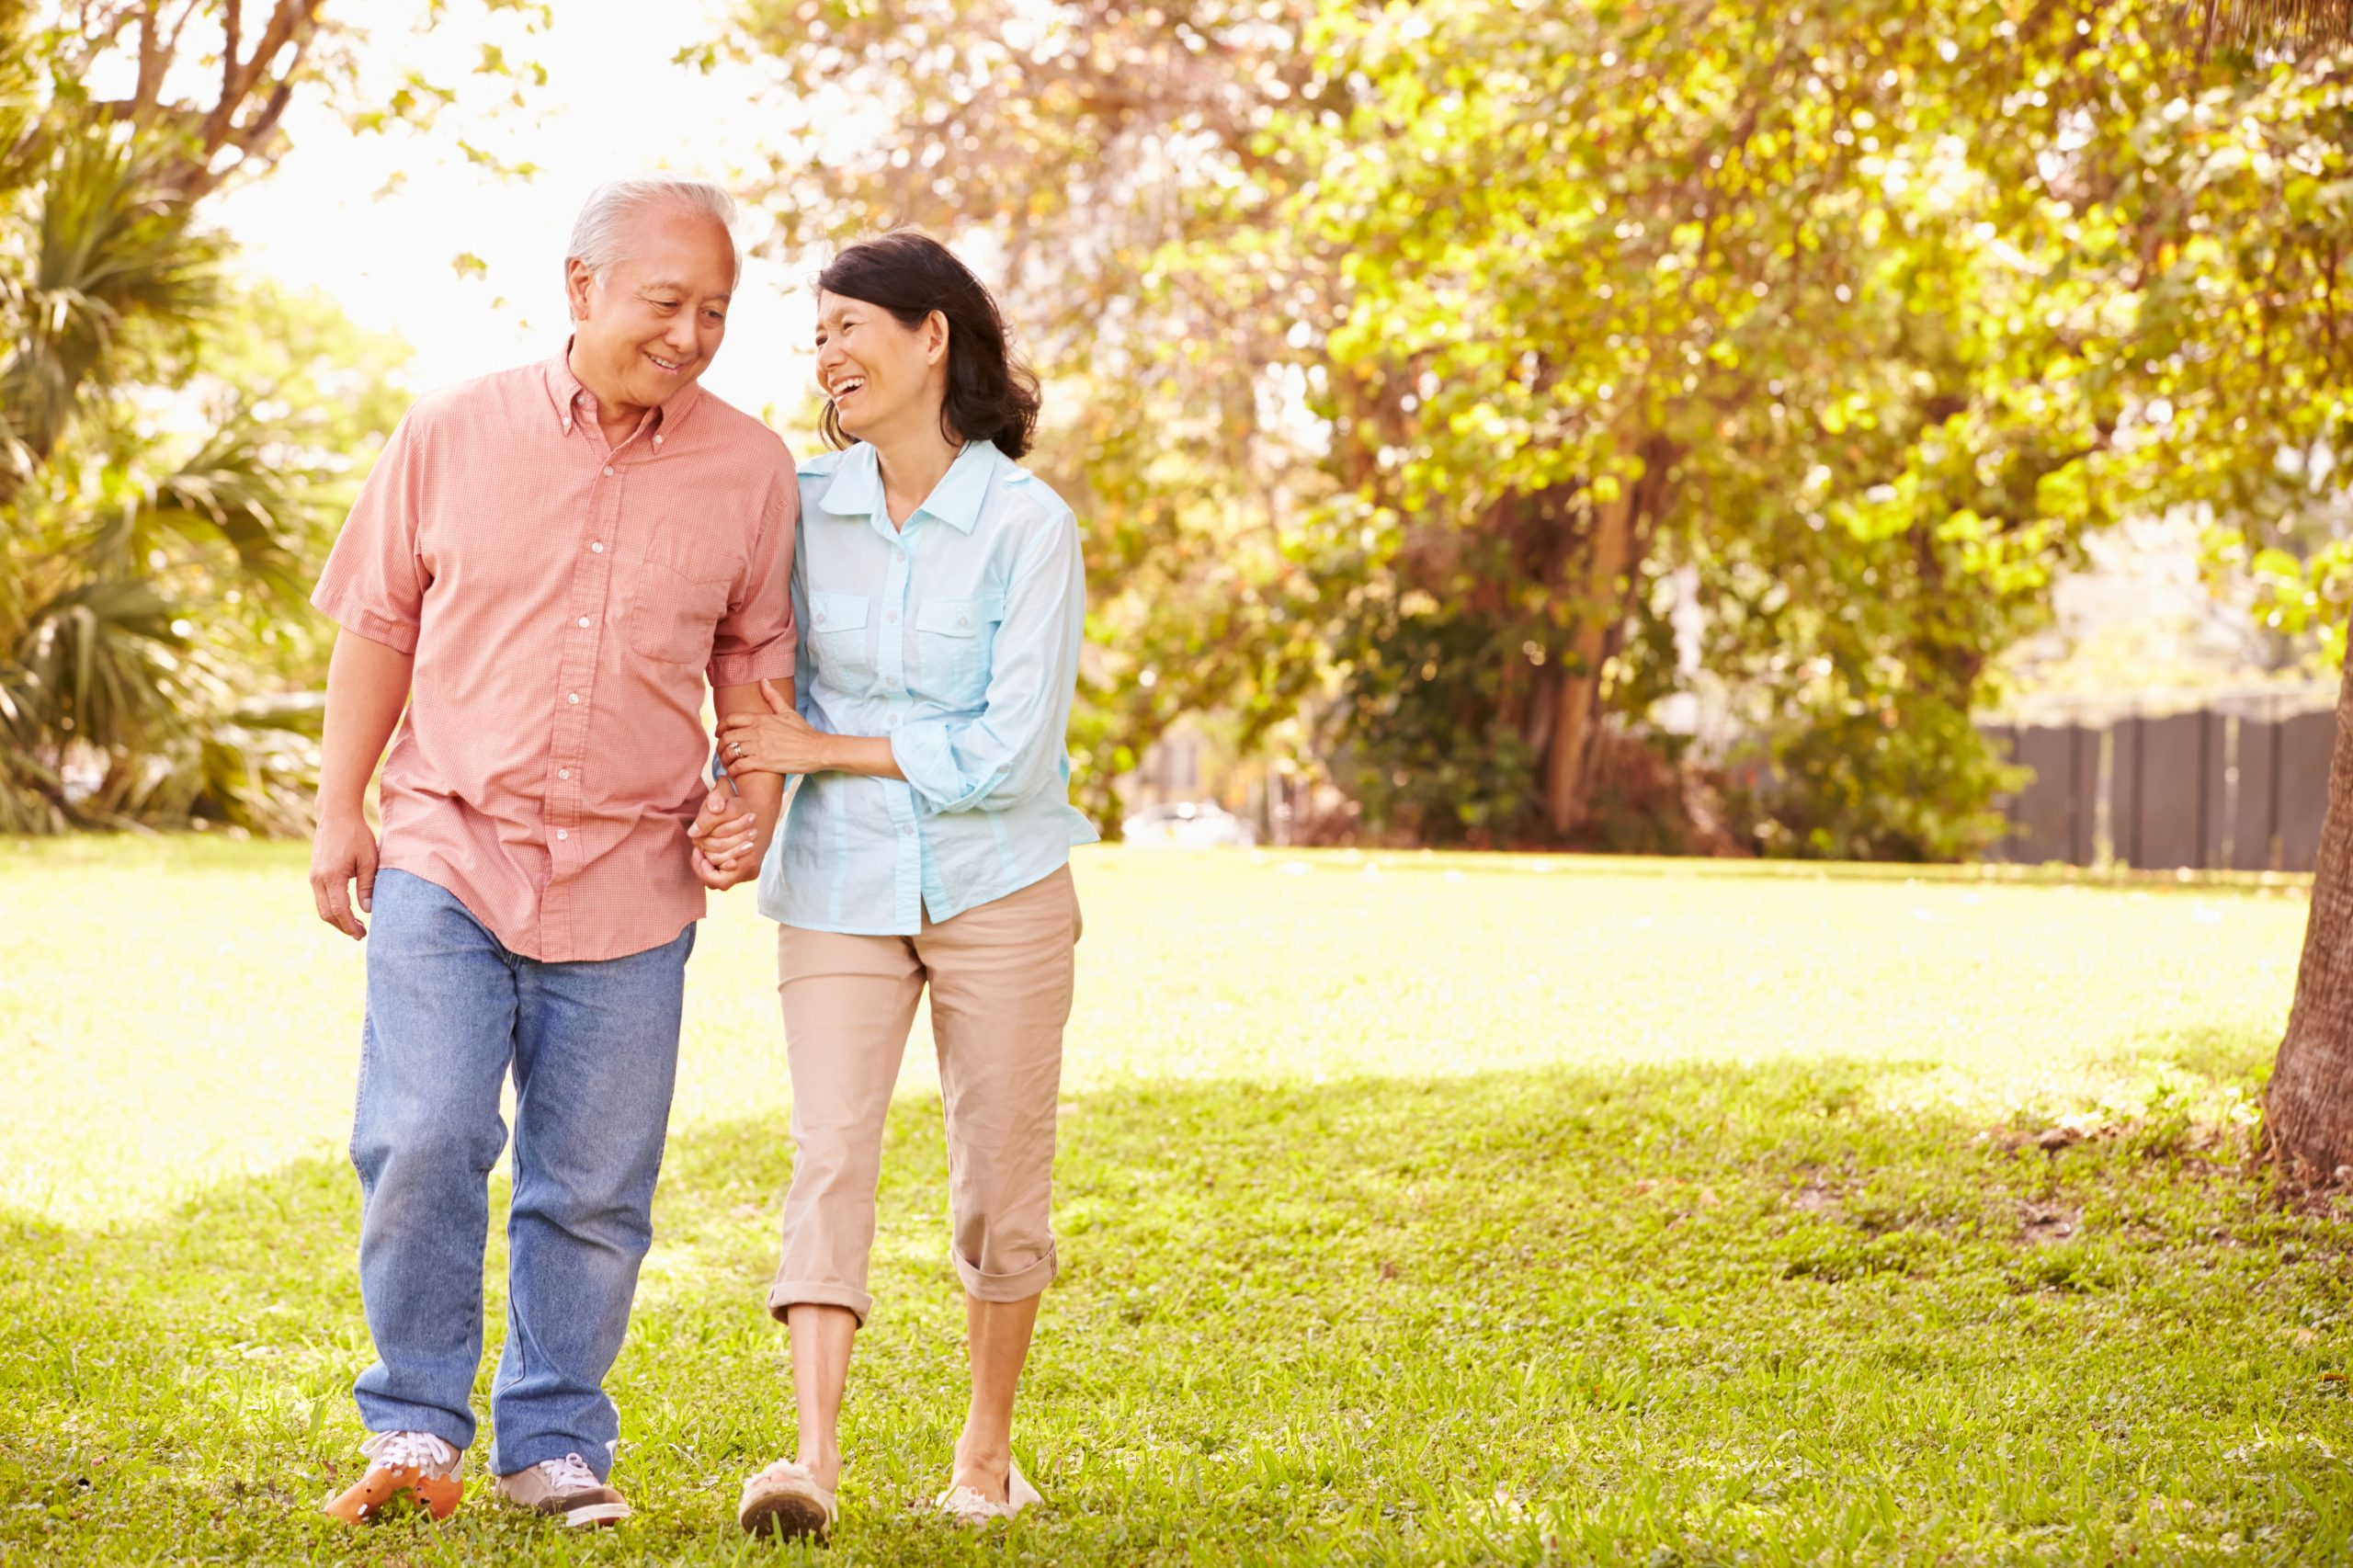 After your total hip replacement, your peace of mind and quality of life may improve.